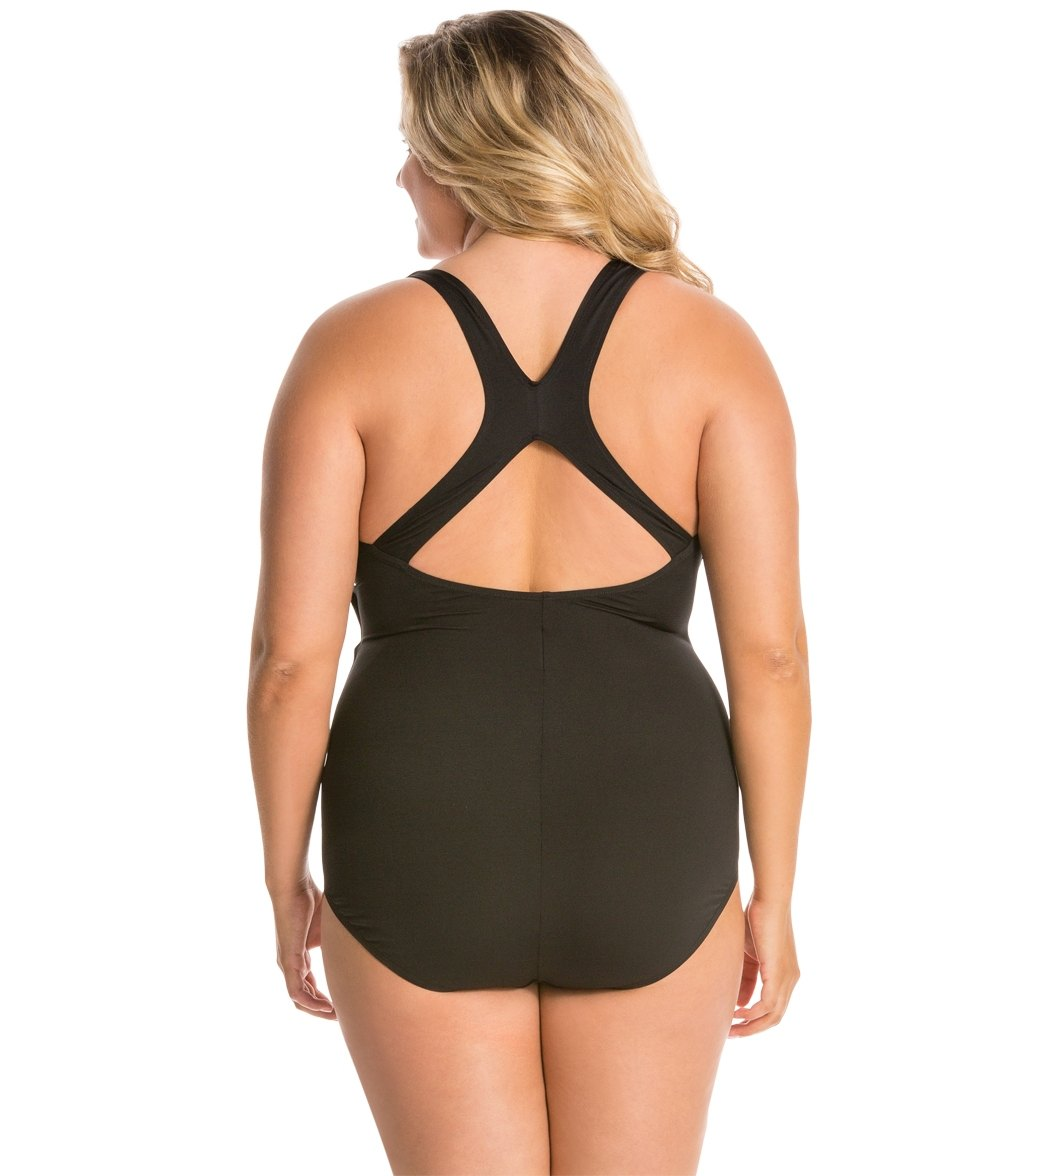 9d0b49d811af1 Speedo Endurance Moderate Ultraback Plus One Piece at SwimOutlet.com ...